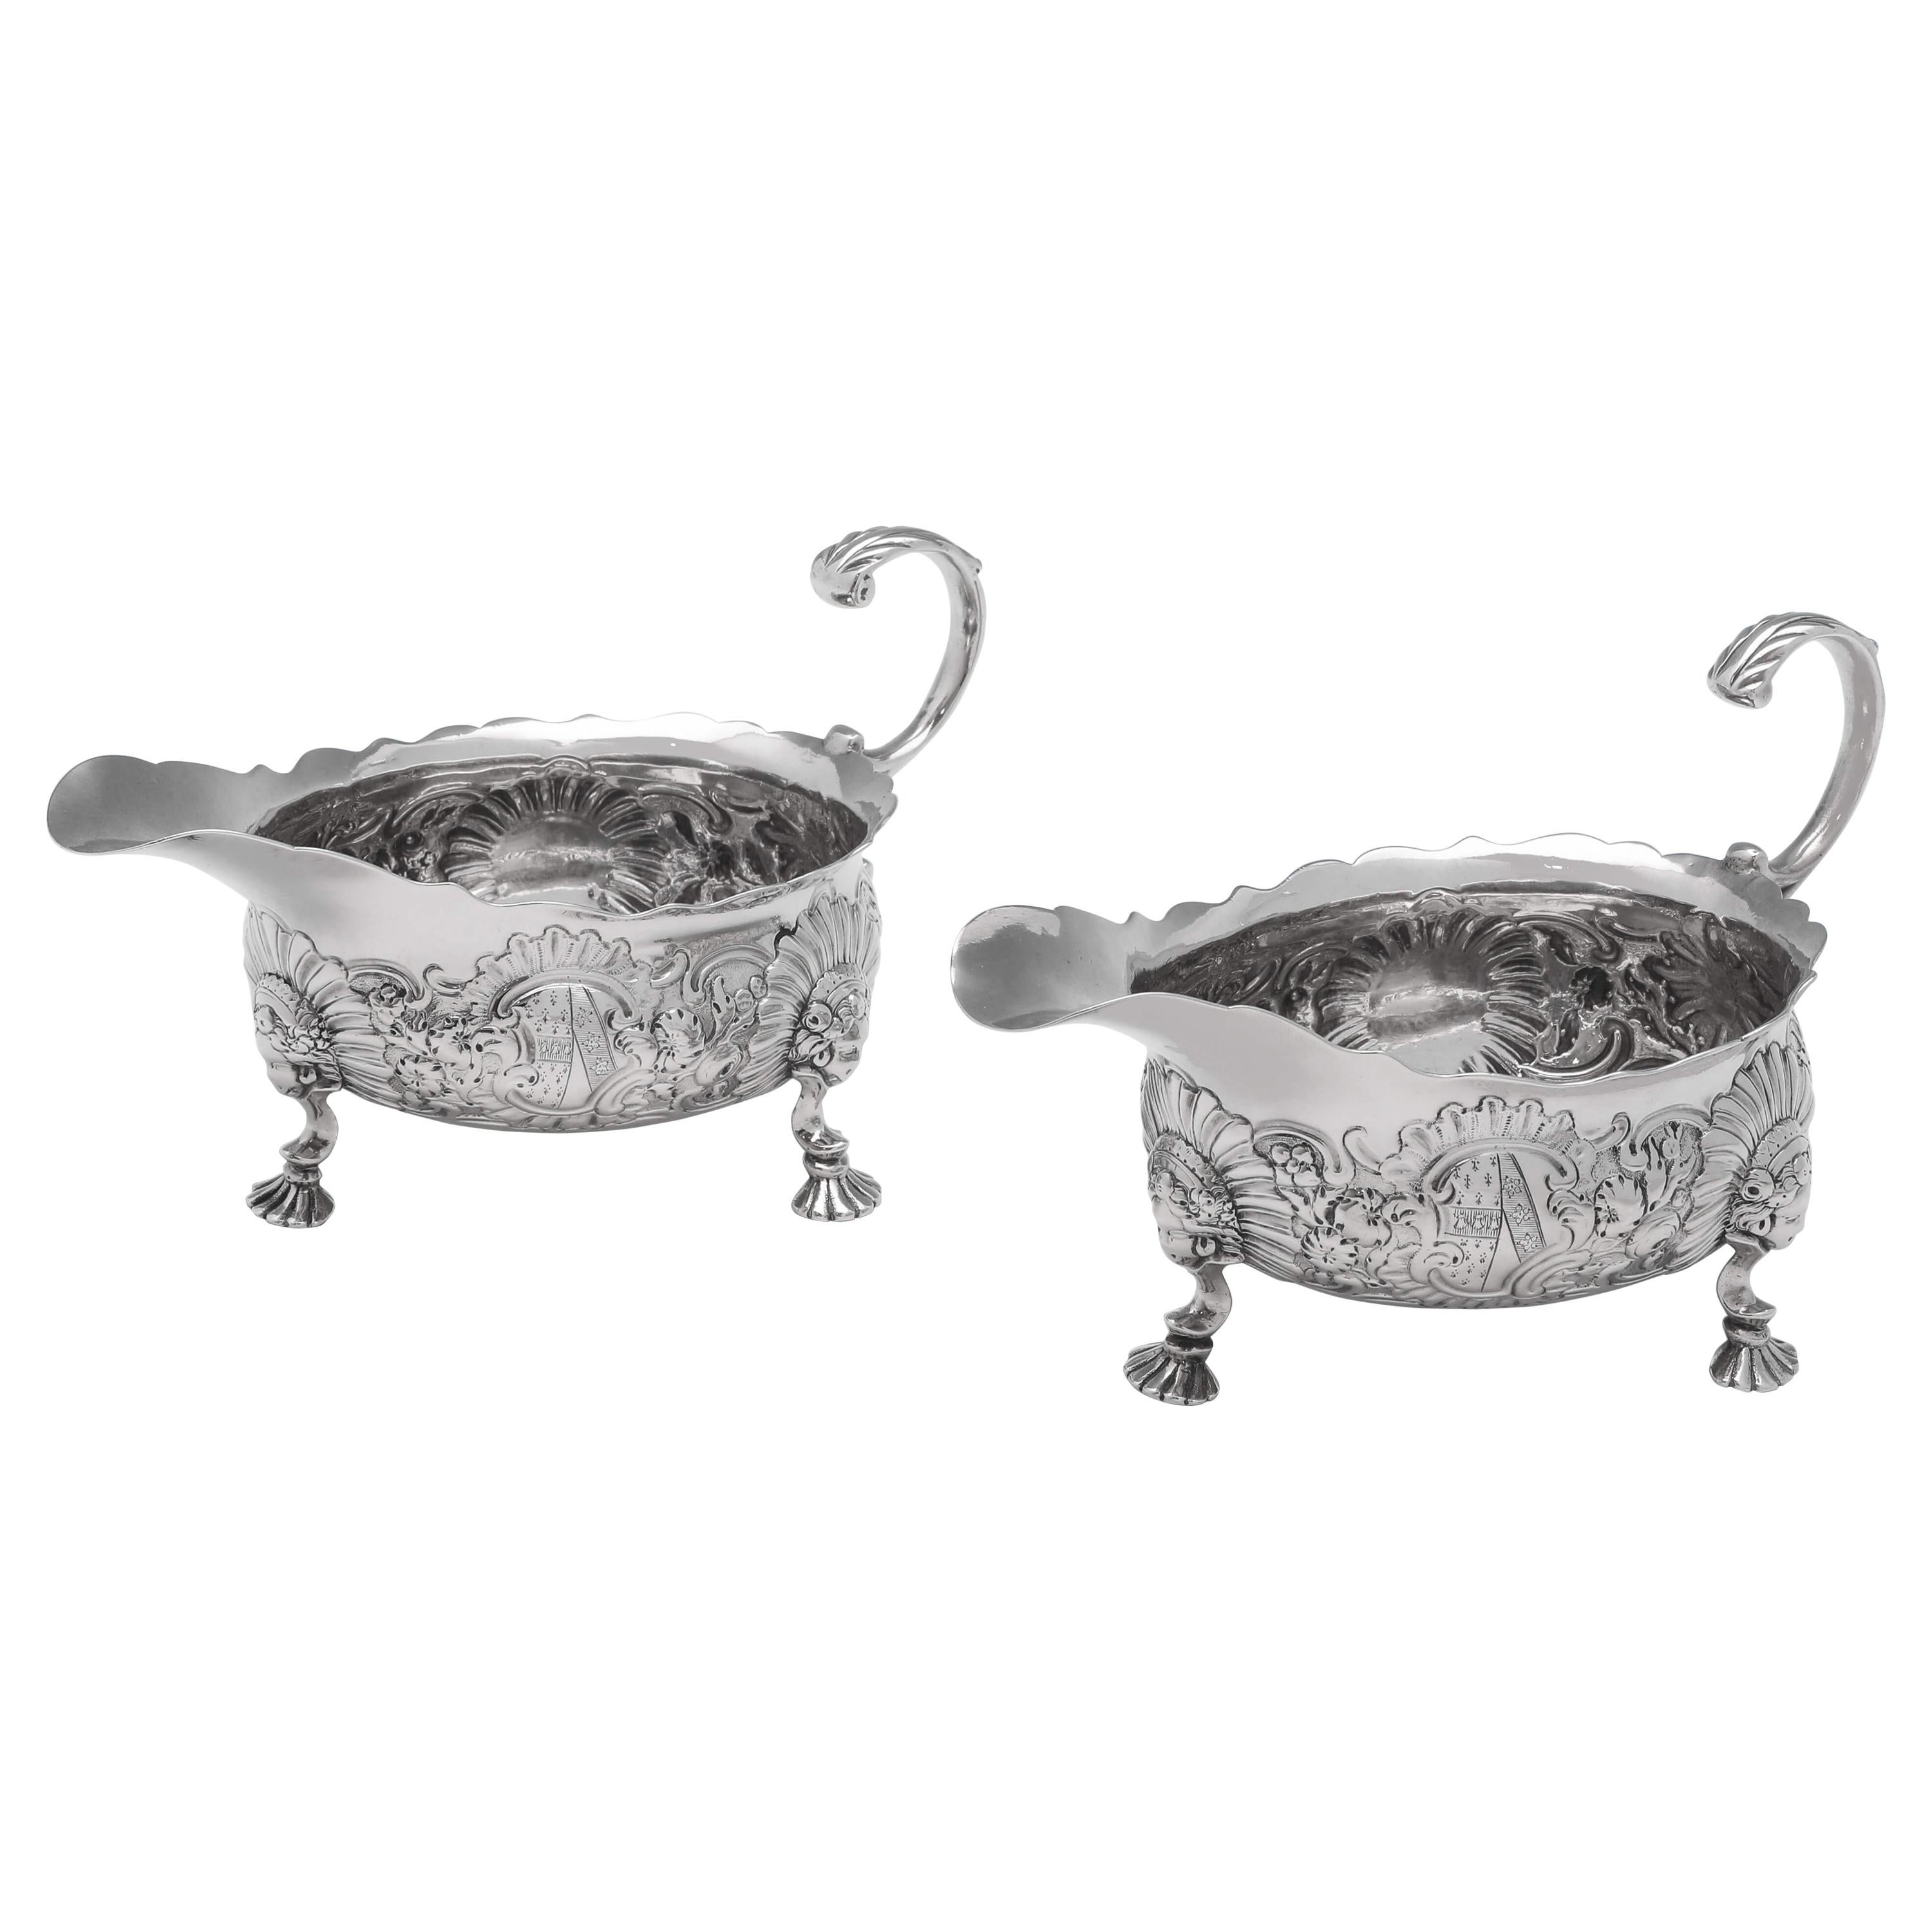 Rococo Period Antique Sterling Silver Pair of Sauce Boats London 1746 R. Kersill